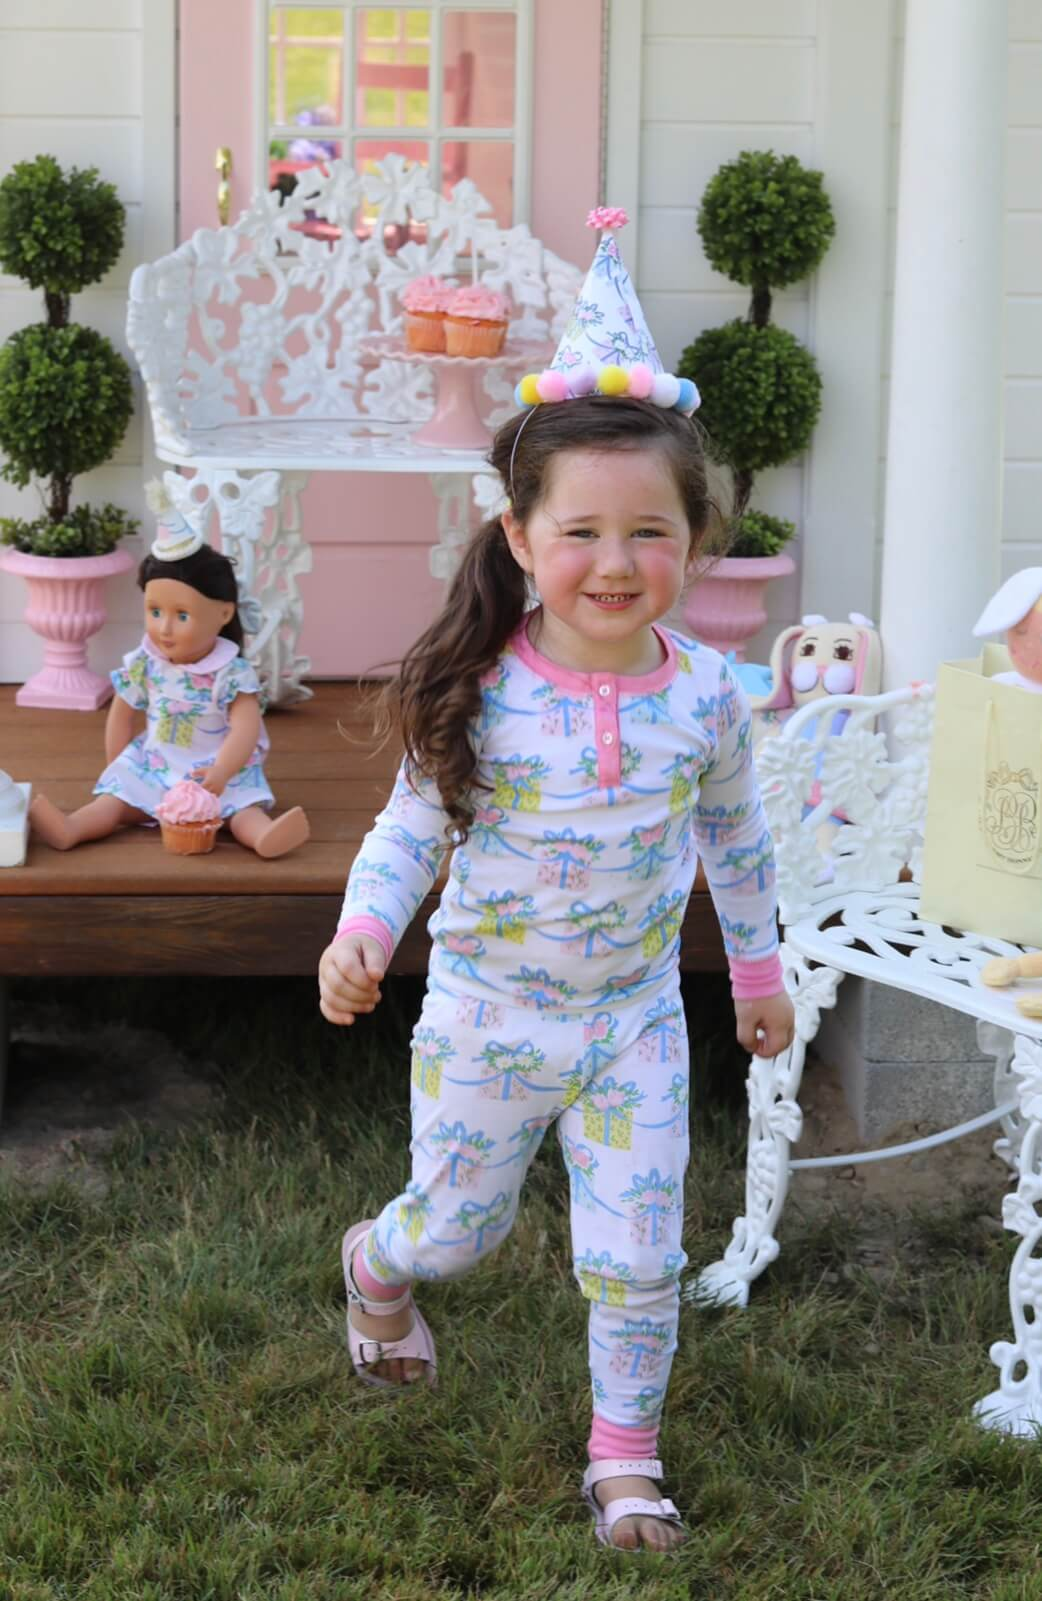 Beaufort Bonnet Birthday playhouse and doll